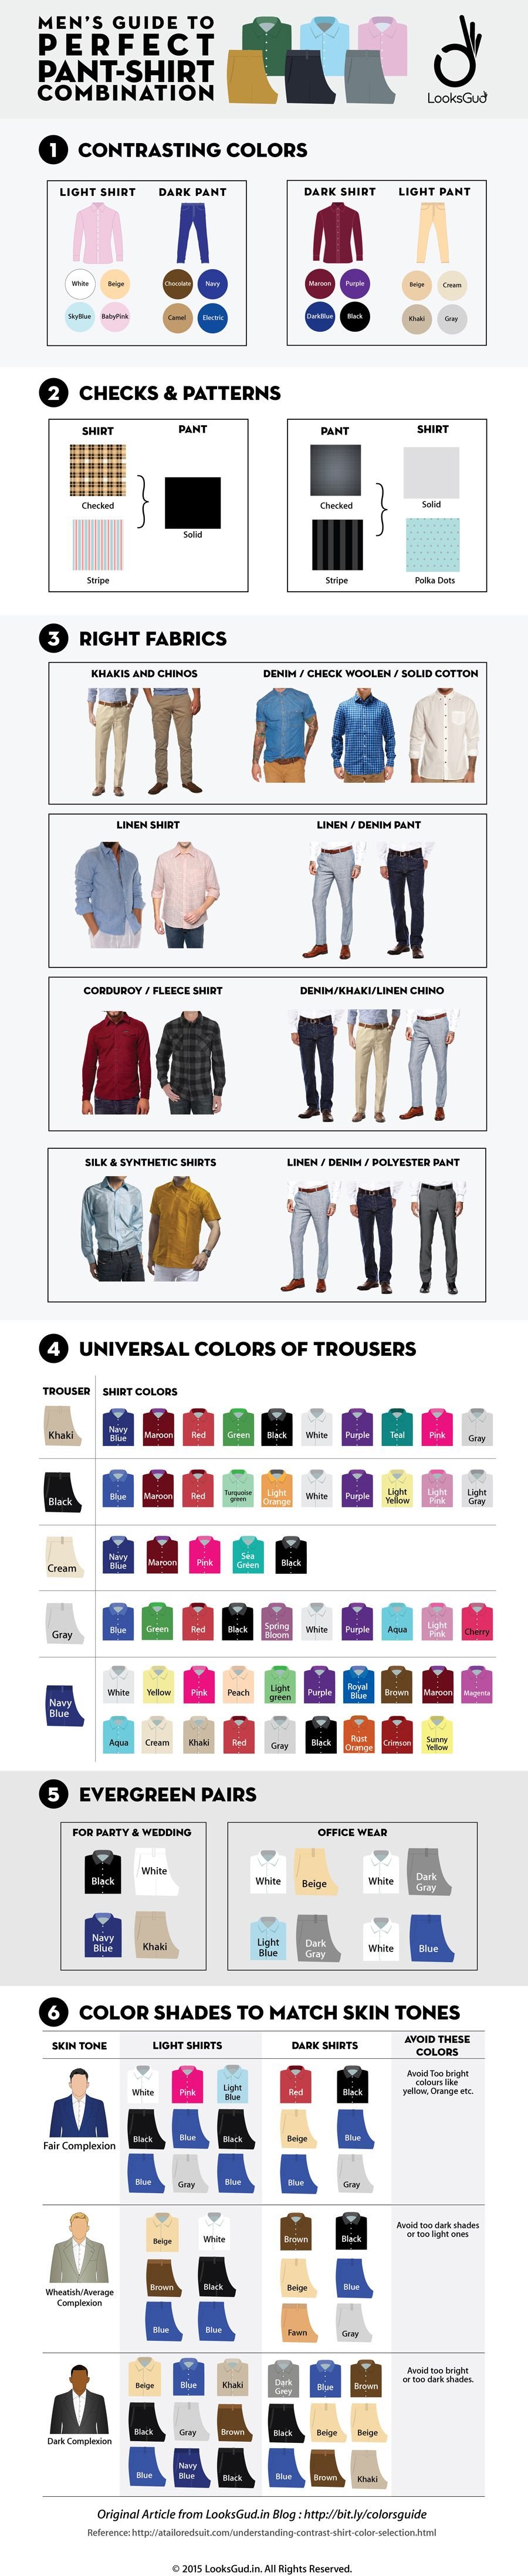 85a75dd9c0 Perfect Pant Shirt Matching Guide for Men's Formal and Casual Look  #Infographic #Fashion #LifeStyle